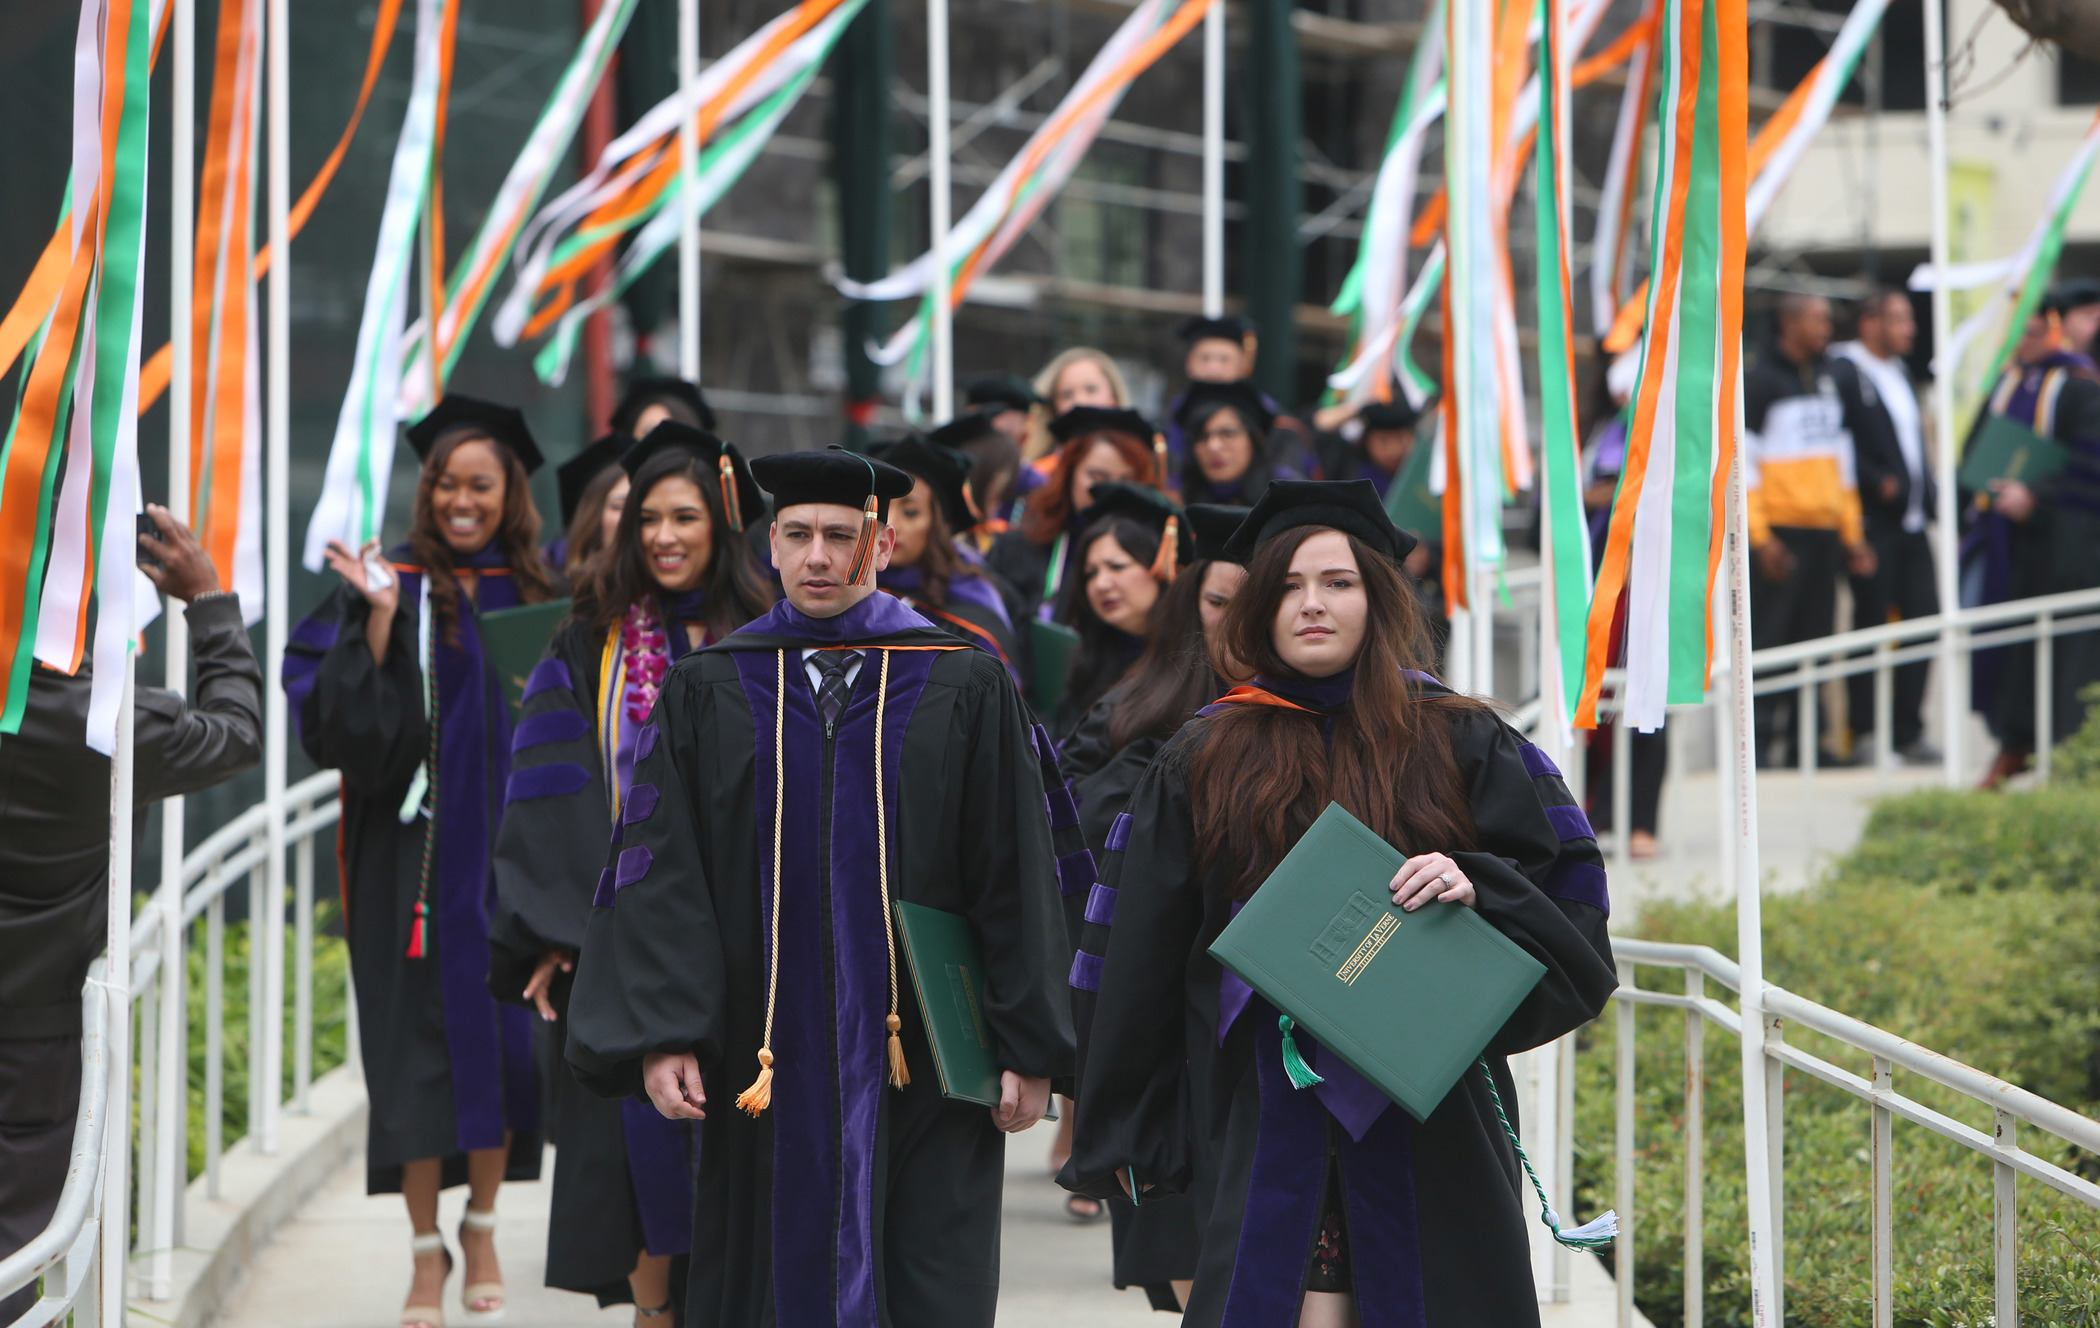 Students participate in the College of Law Commencement ceremony.